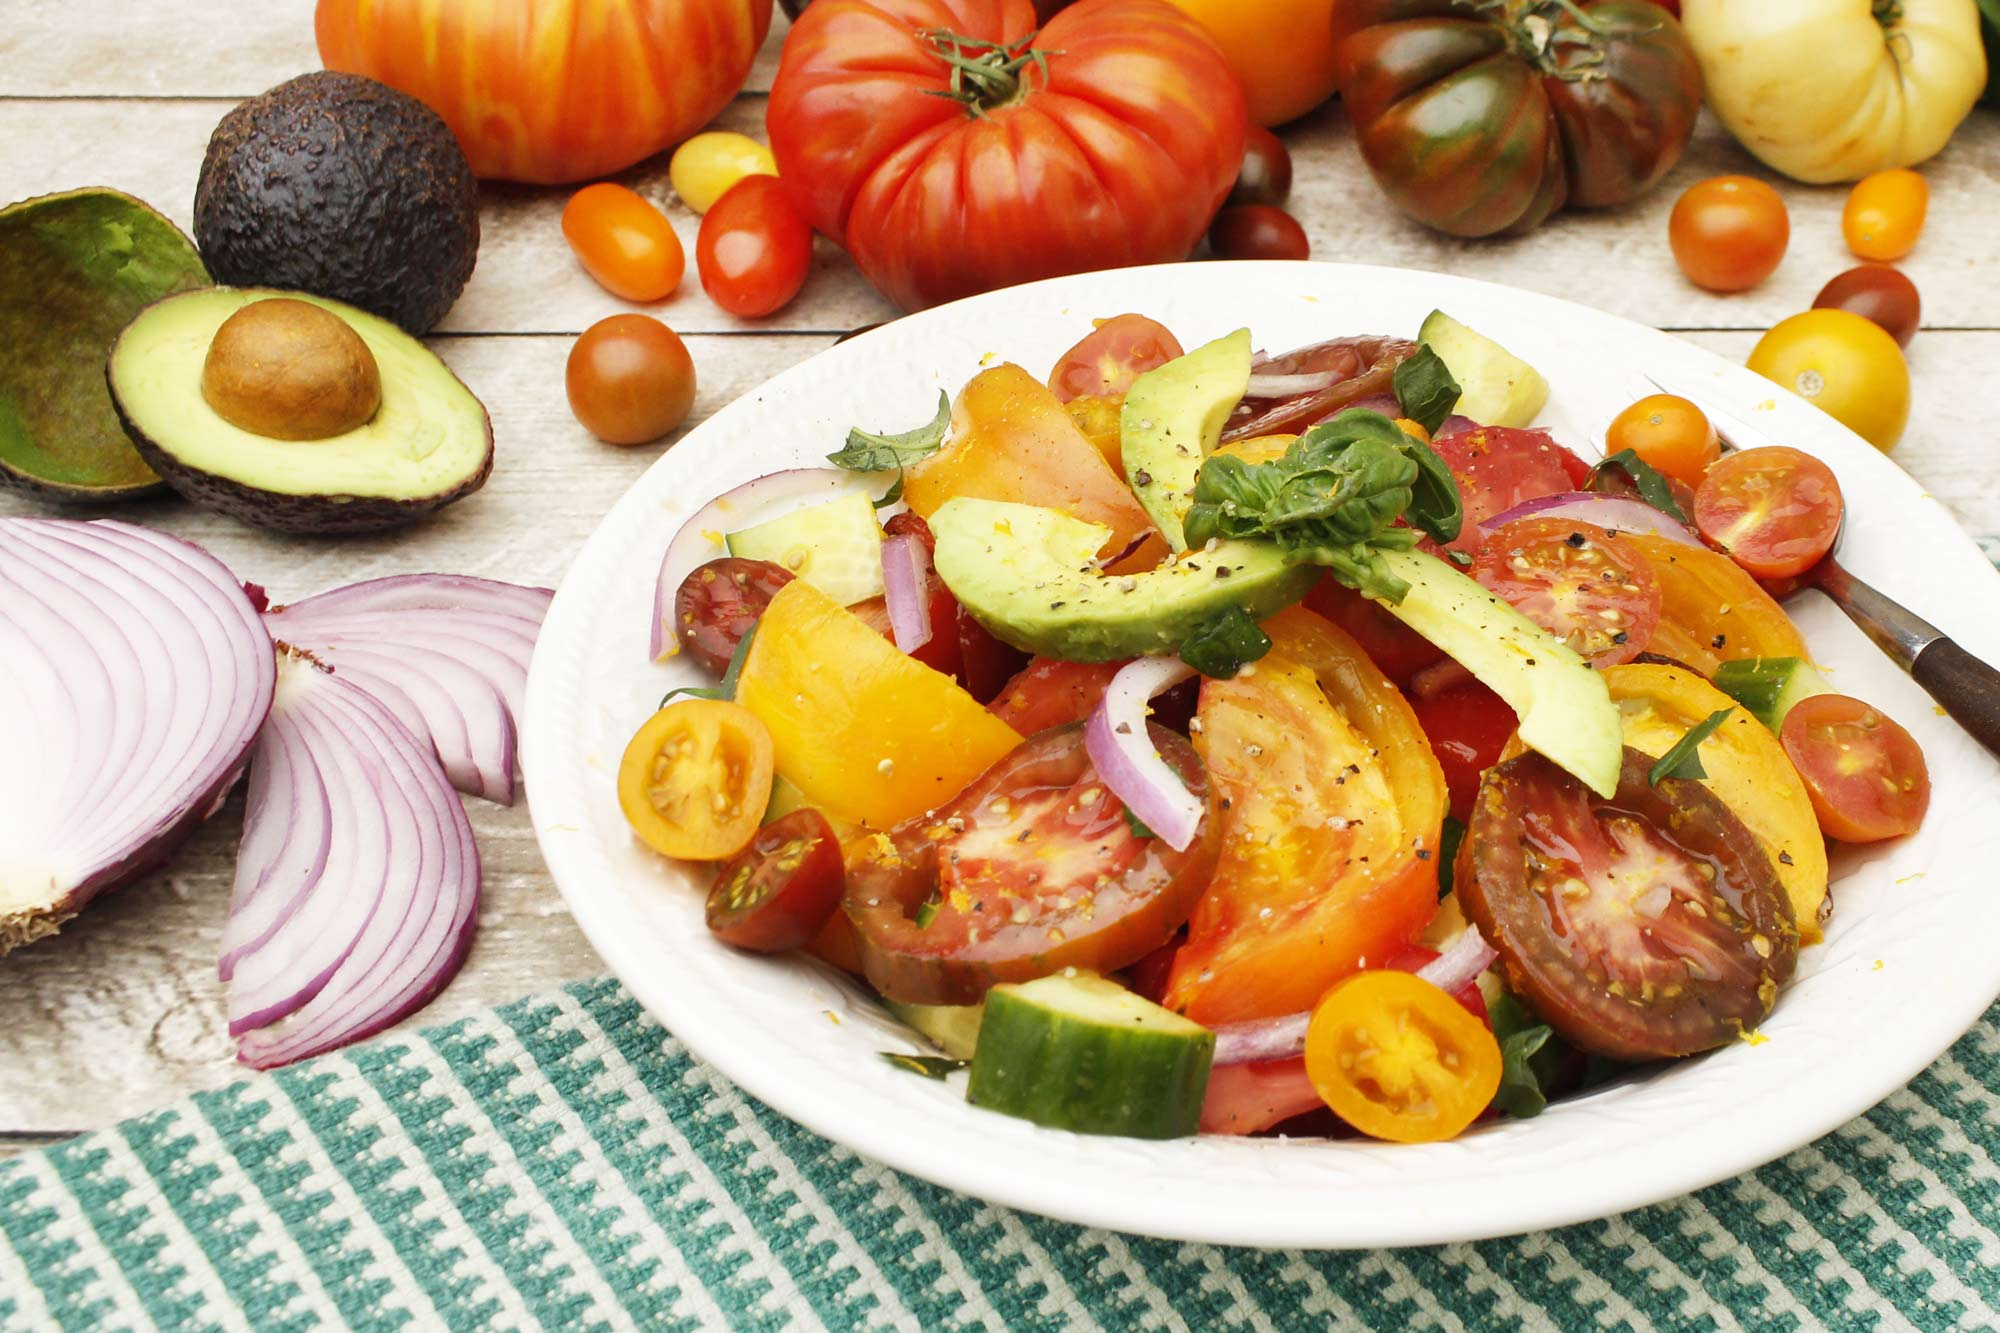 Refreshing Heirloom Tomato Salad